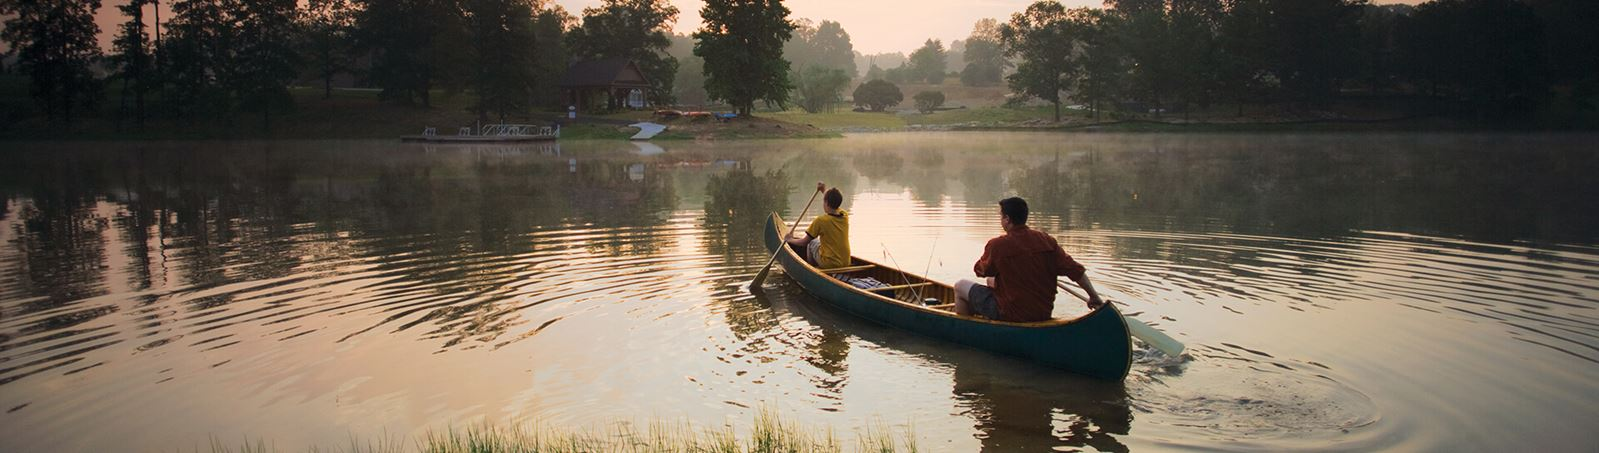 Father and son canoeing at dawn on Lake Sterling